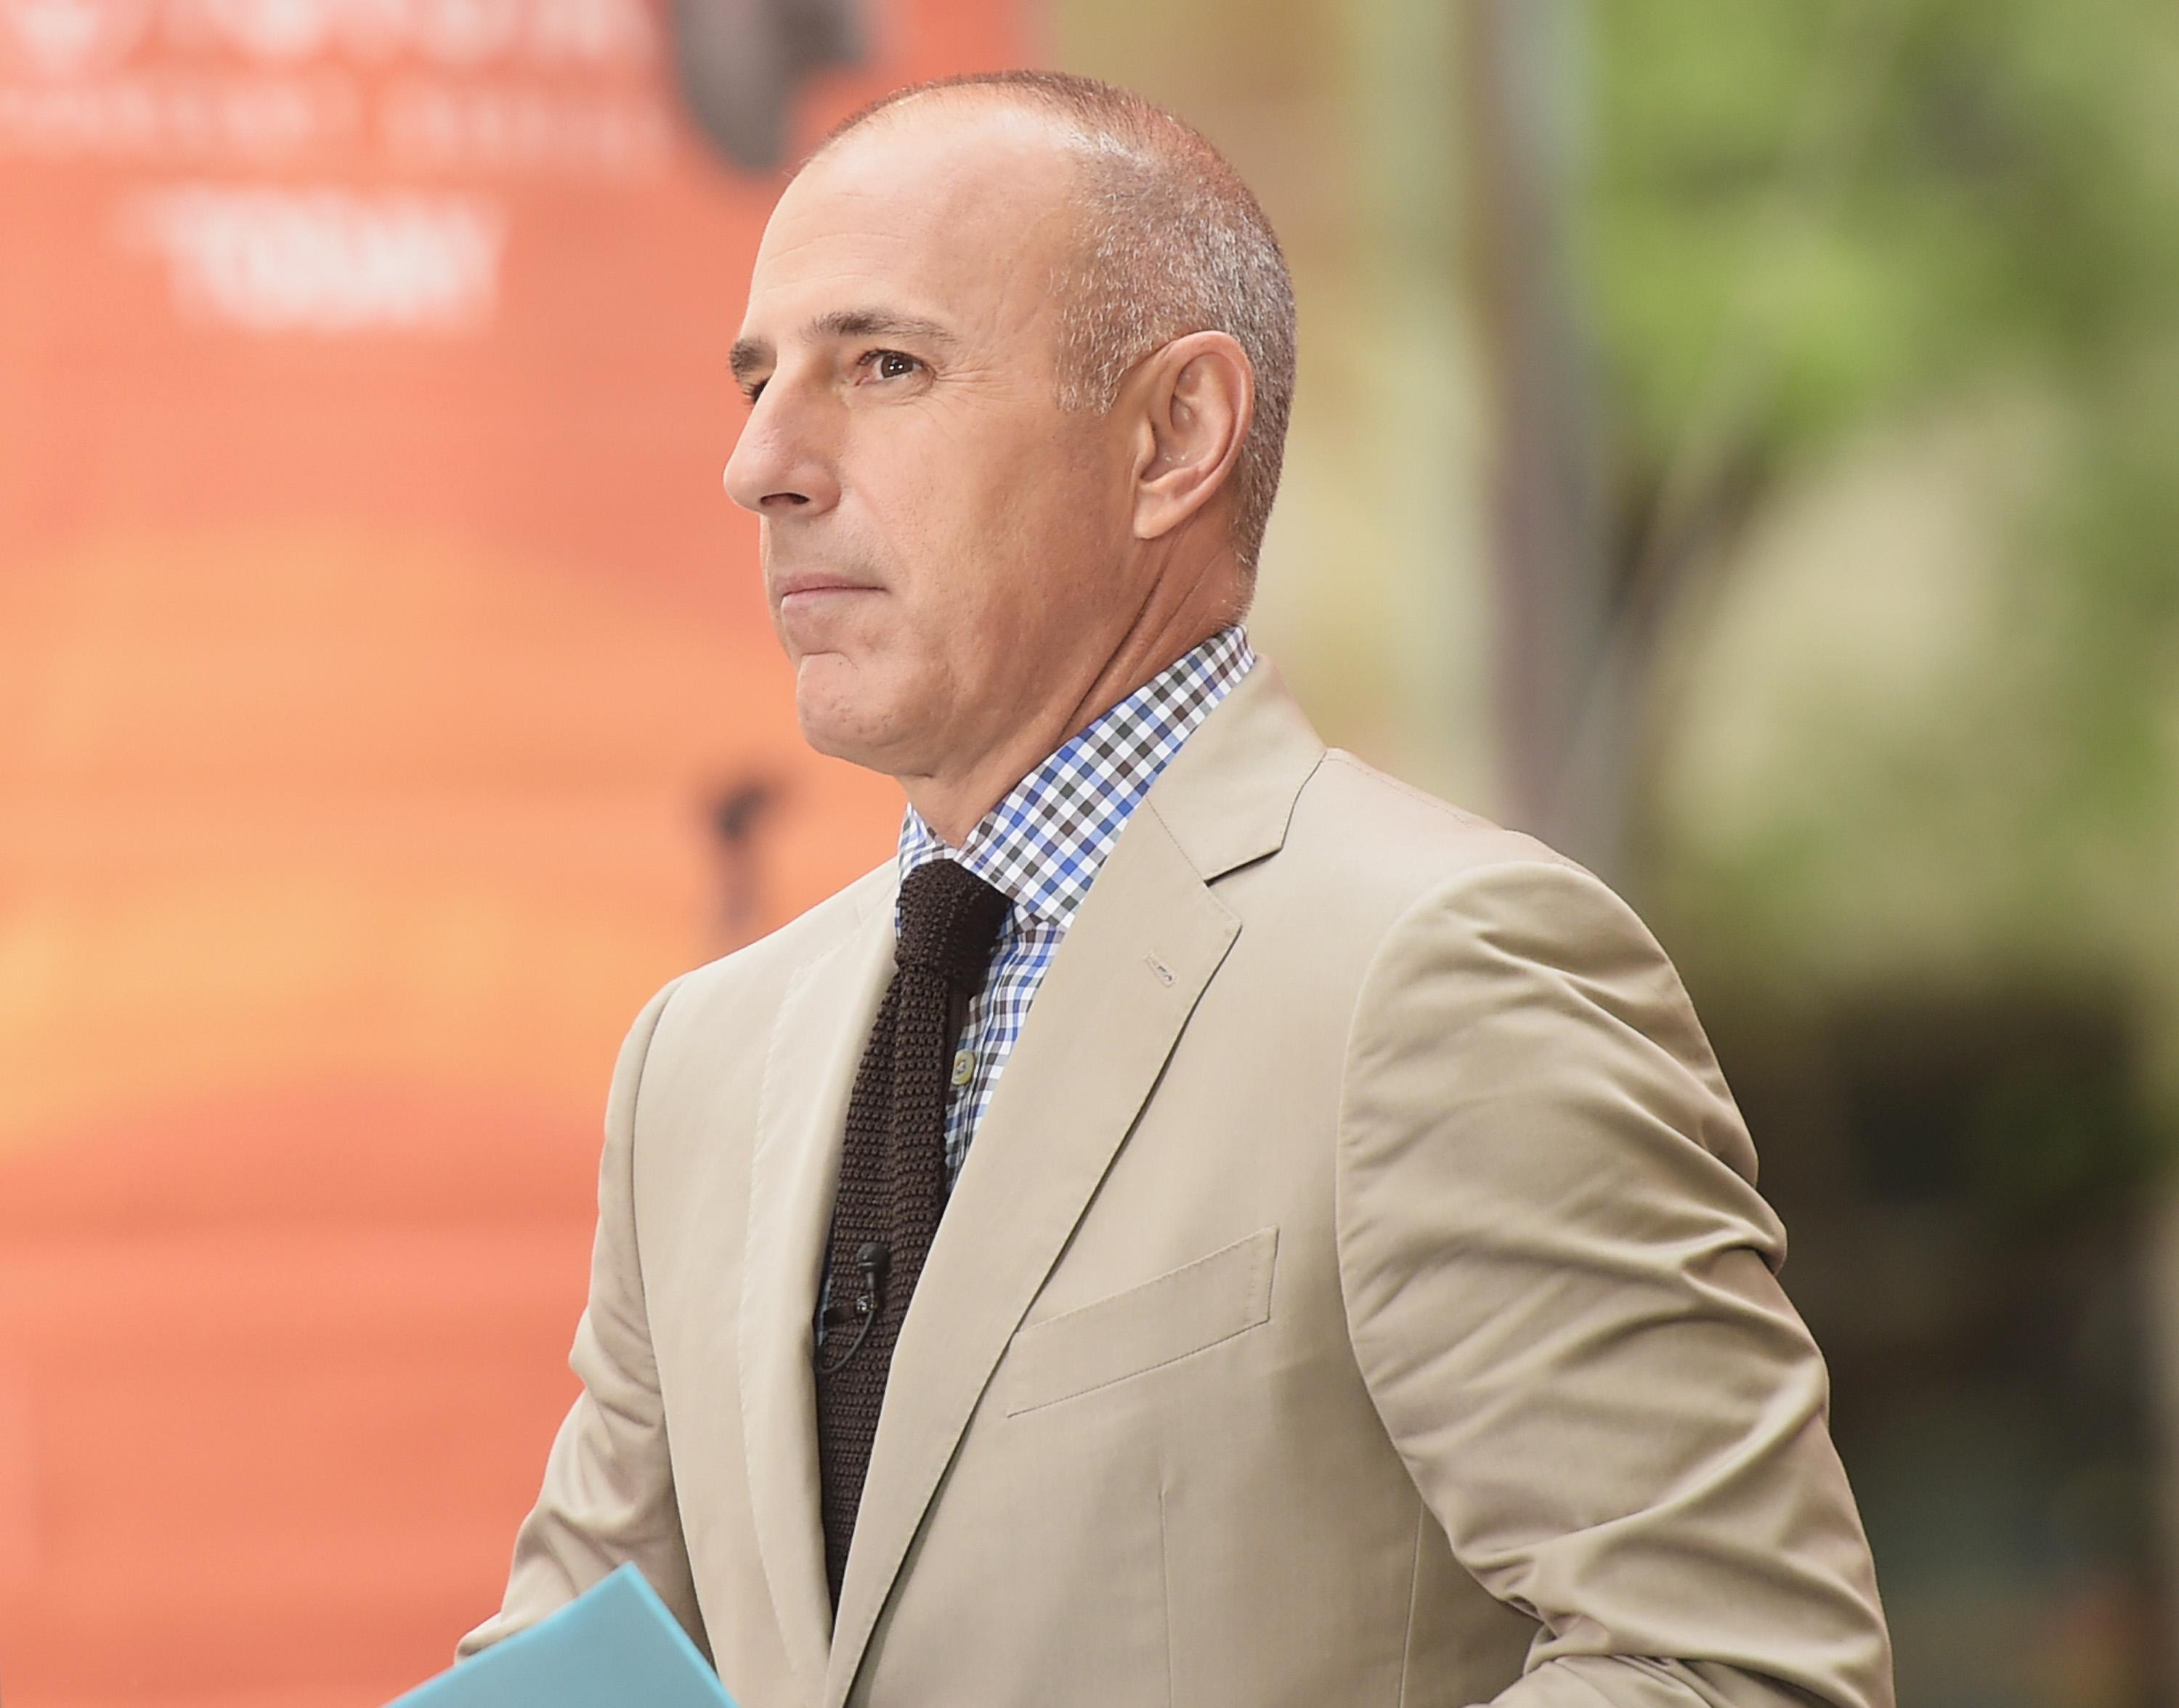 Matt Lauer expressed sorrow and regret for the pain I have caused in a statement on Thursday morning his first public comments after NBC News fired